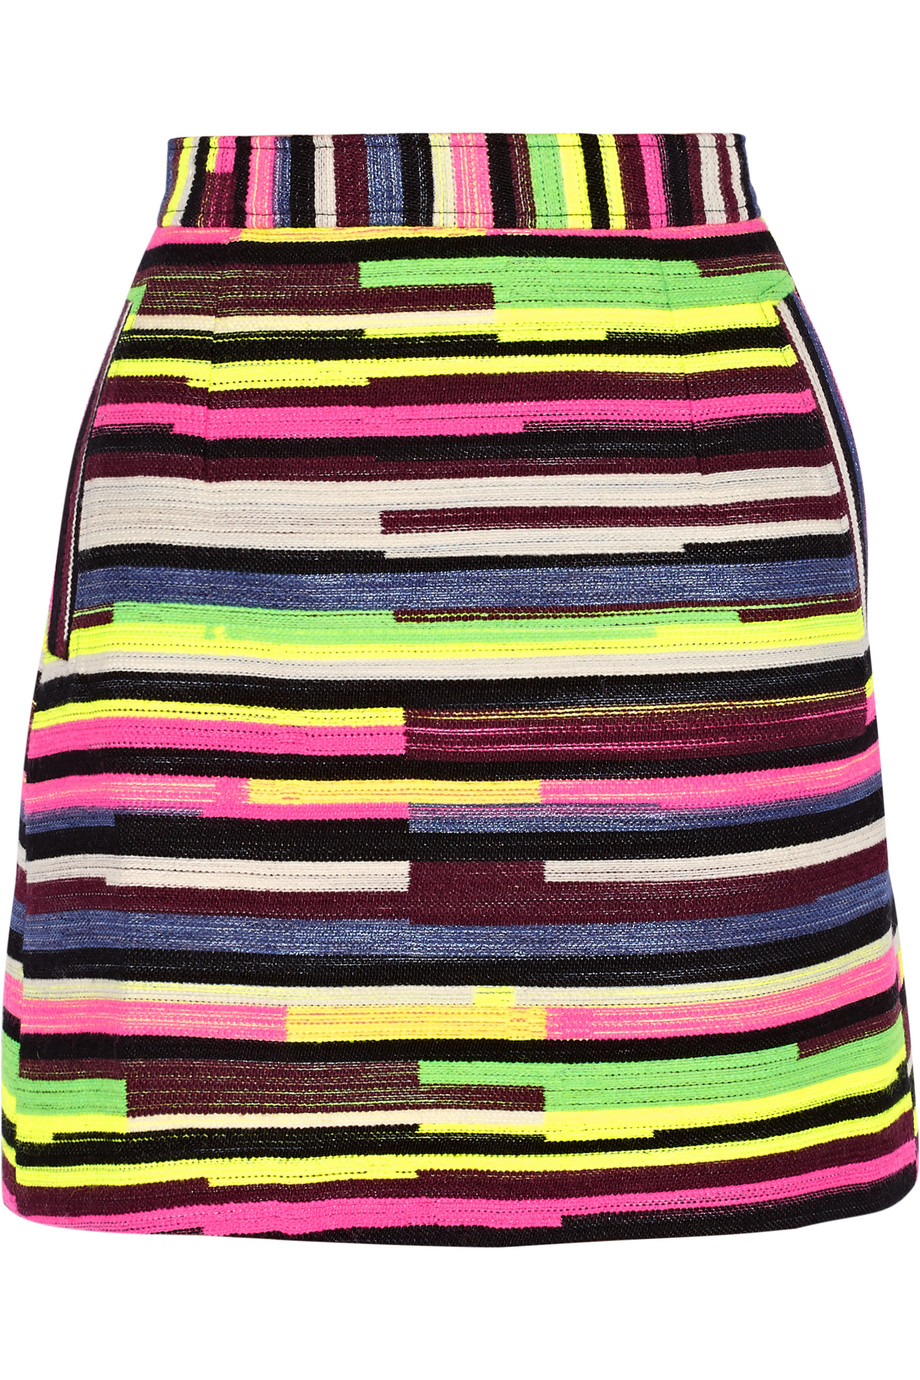 Gina Striped Jacquard Mini Skirt, House of Holland, Bright Pink/Lime Green, Women's, Size: 10